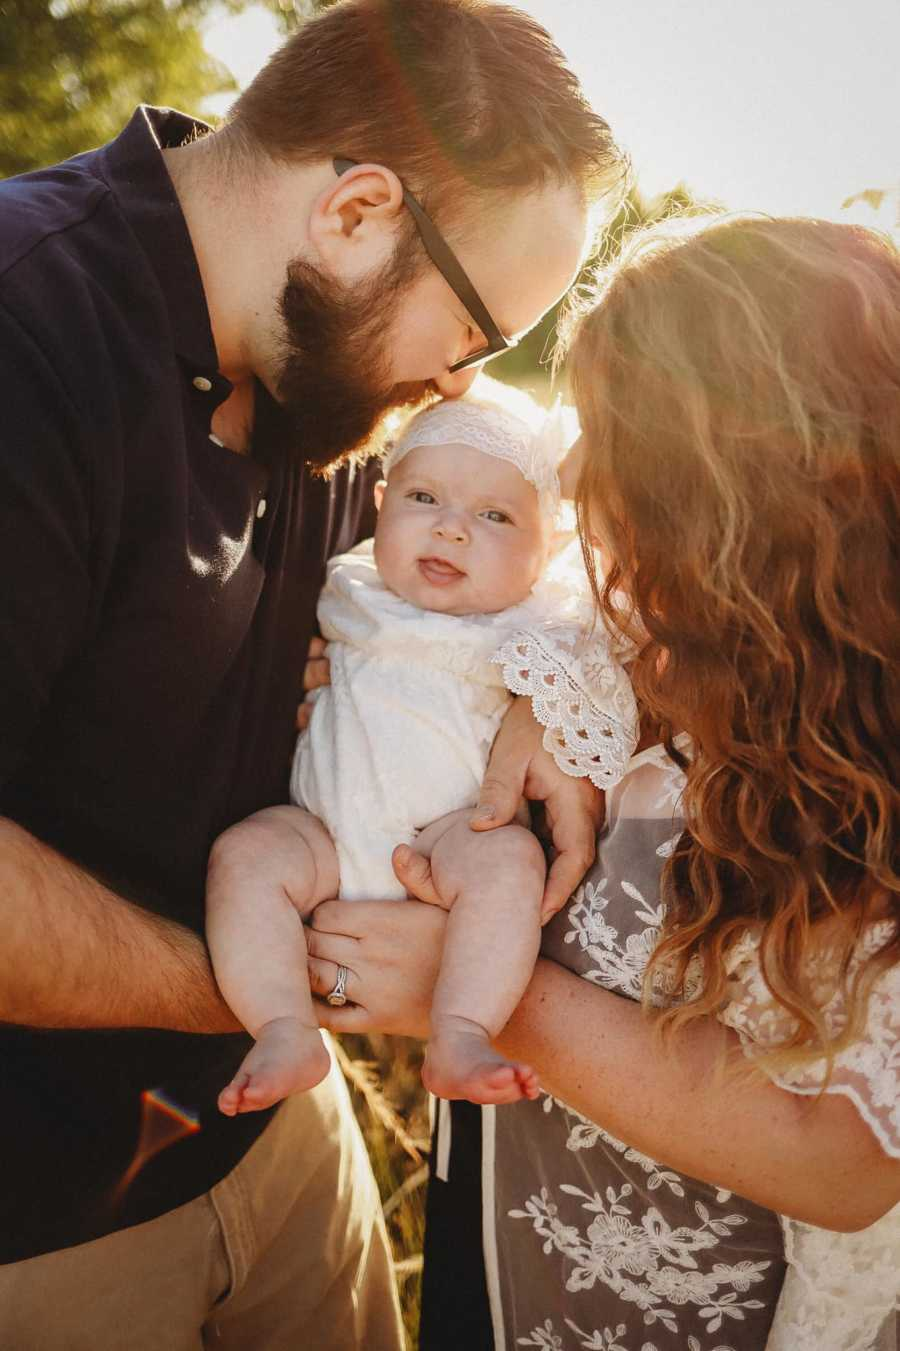 Couple give love to their newborn daughter